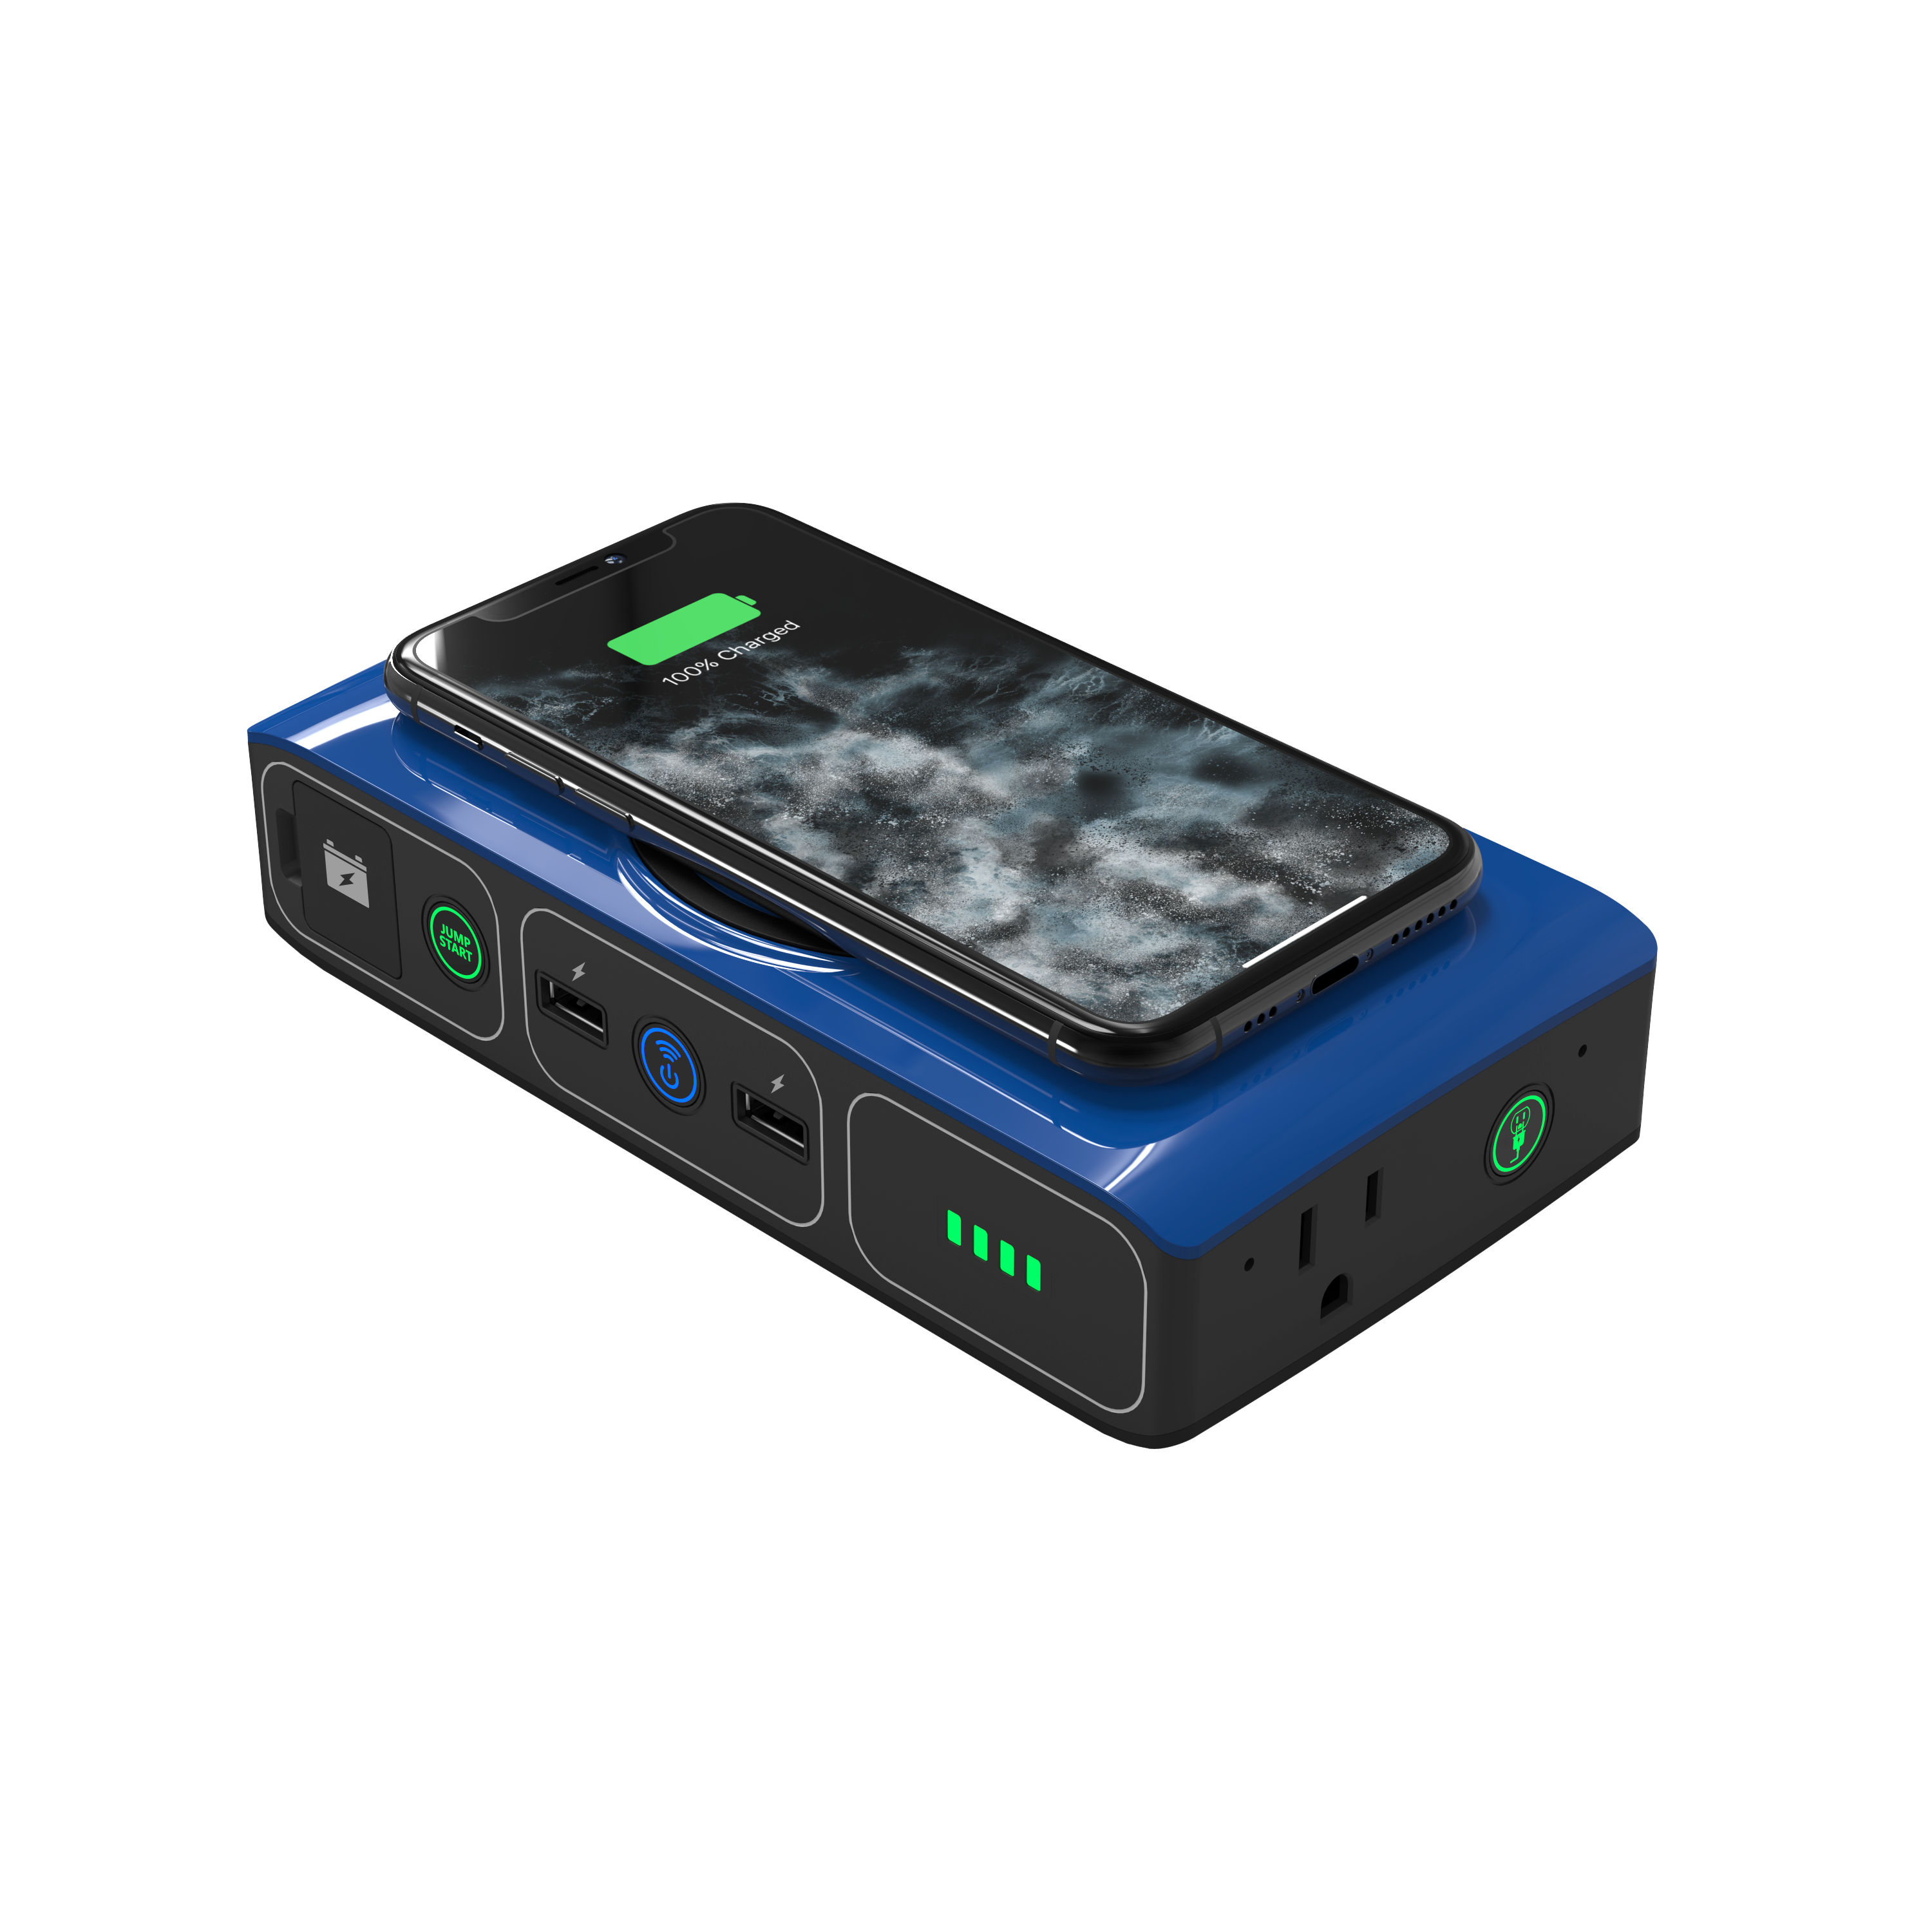 Mophie S Newest Battery Pack Ships With Jumper Cables To Start Your Car Internet Technology News